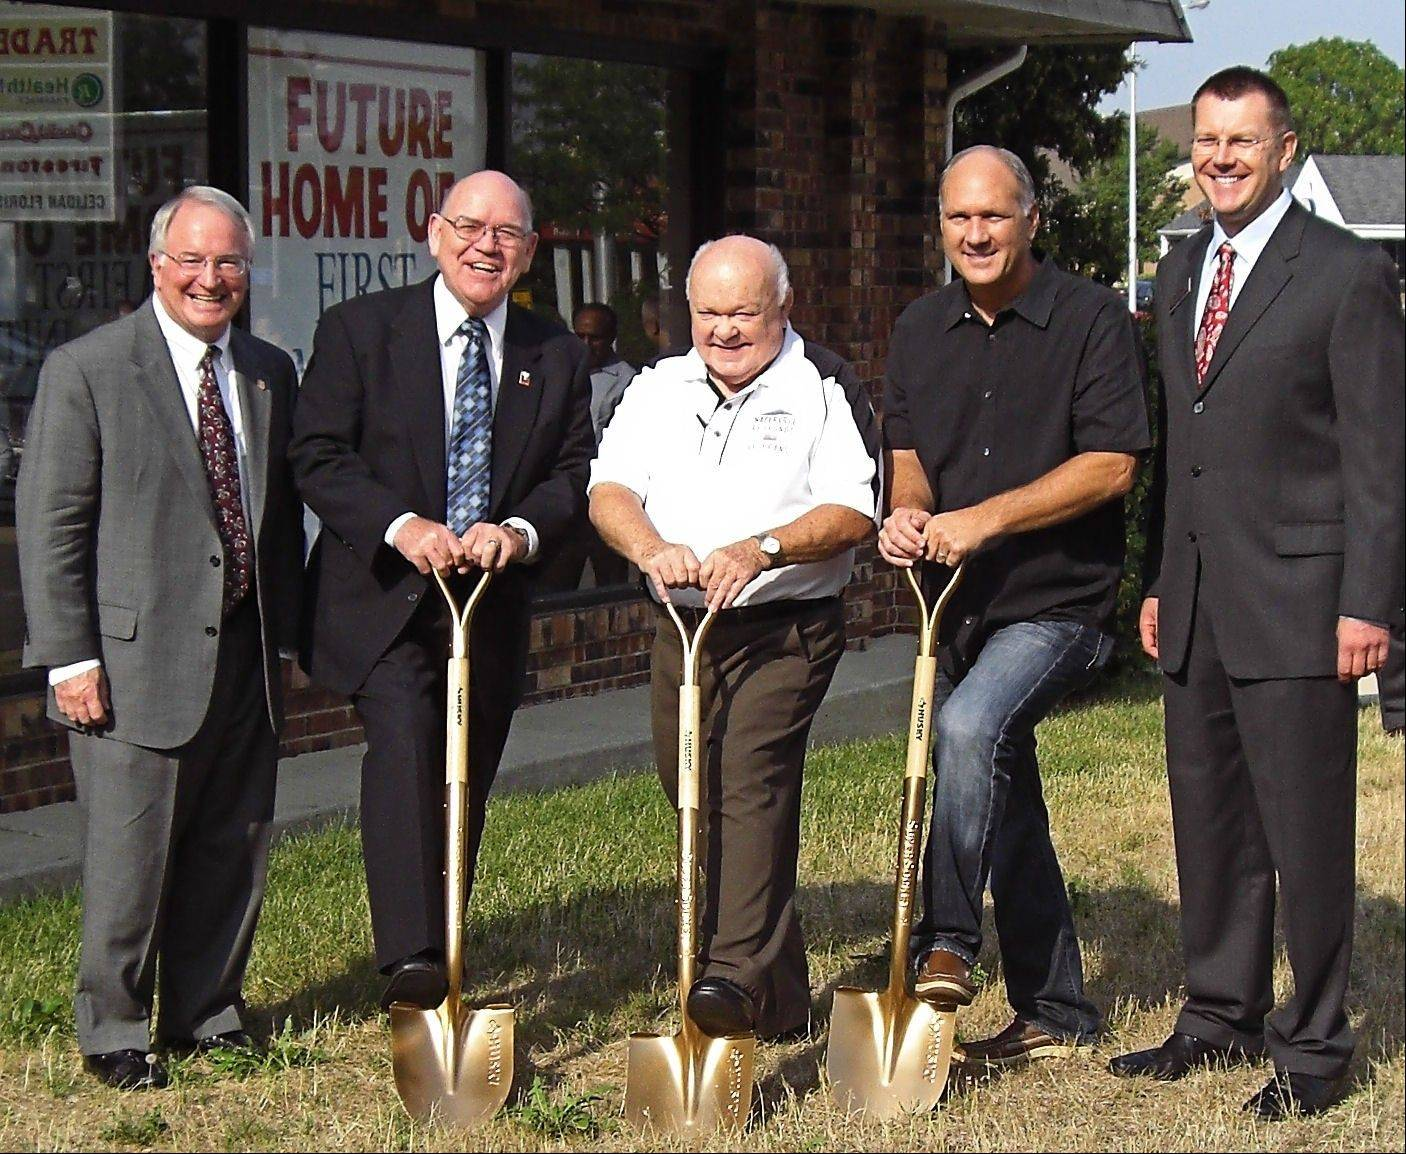 J. Patrick Benton, Market President of First Community Bank — Naperville, from left, Doug Krause, Naperville councilman; Naperville Mayor A. George Pradel; Steve Chirico, Naperville councilman; and Scott Wehrli, member of the bank's board, break ground on the new site.